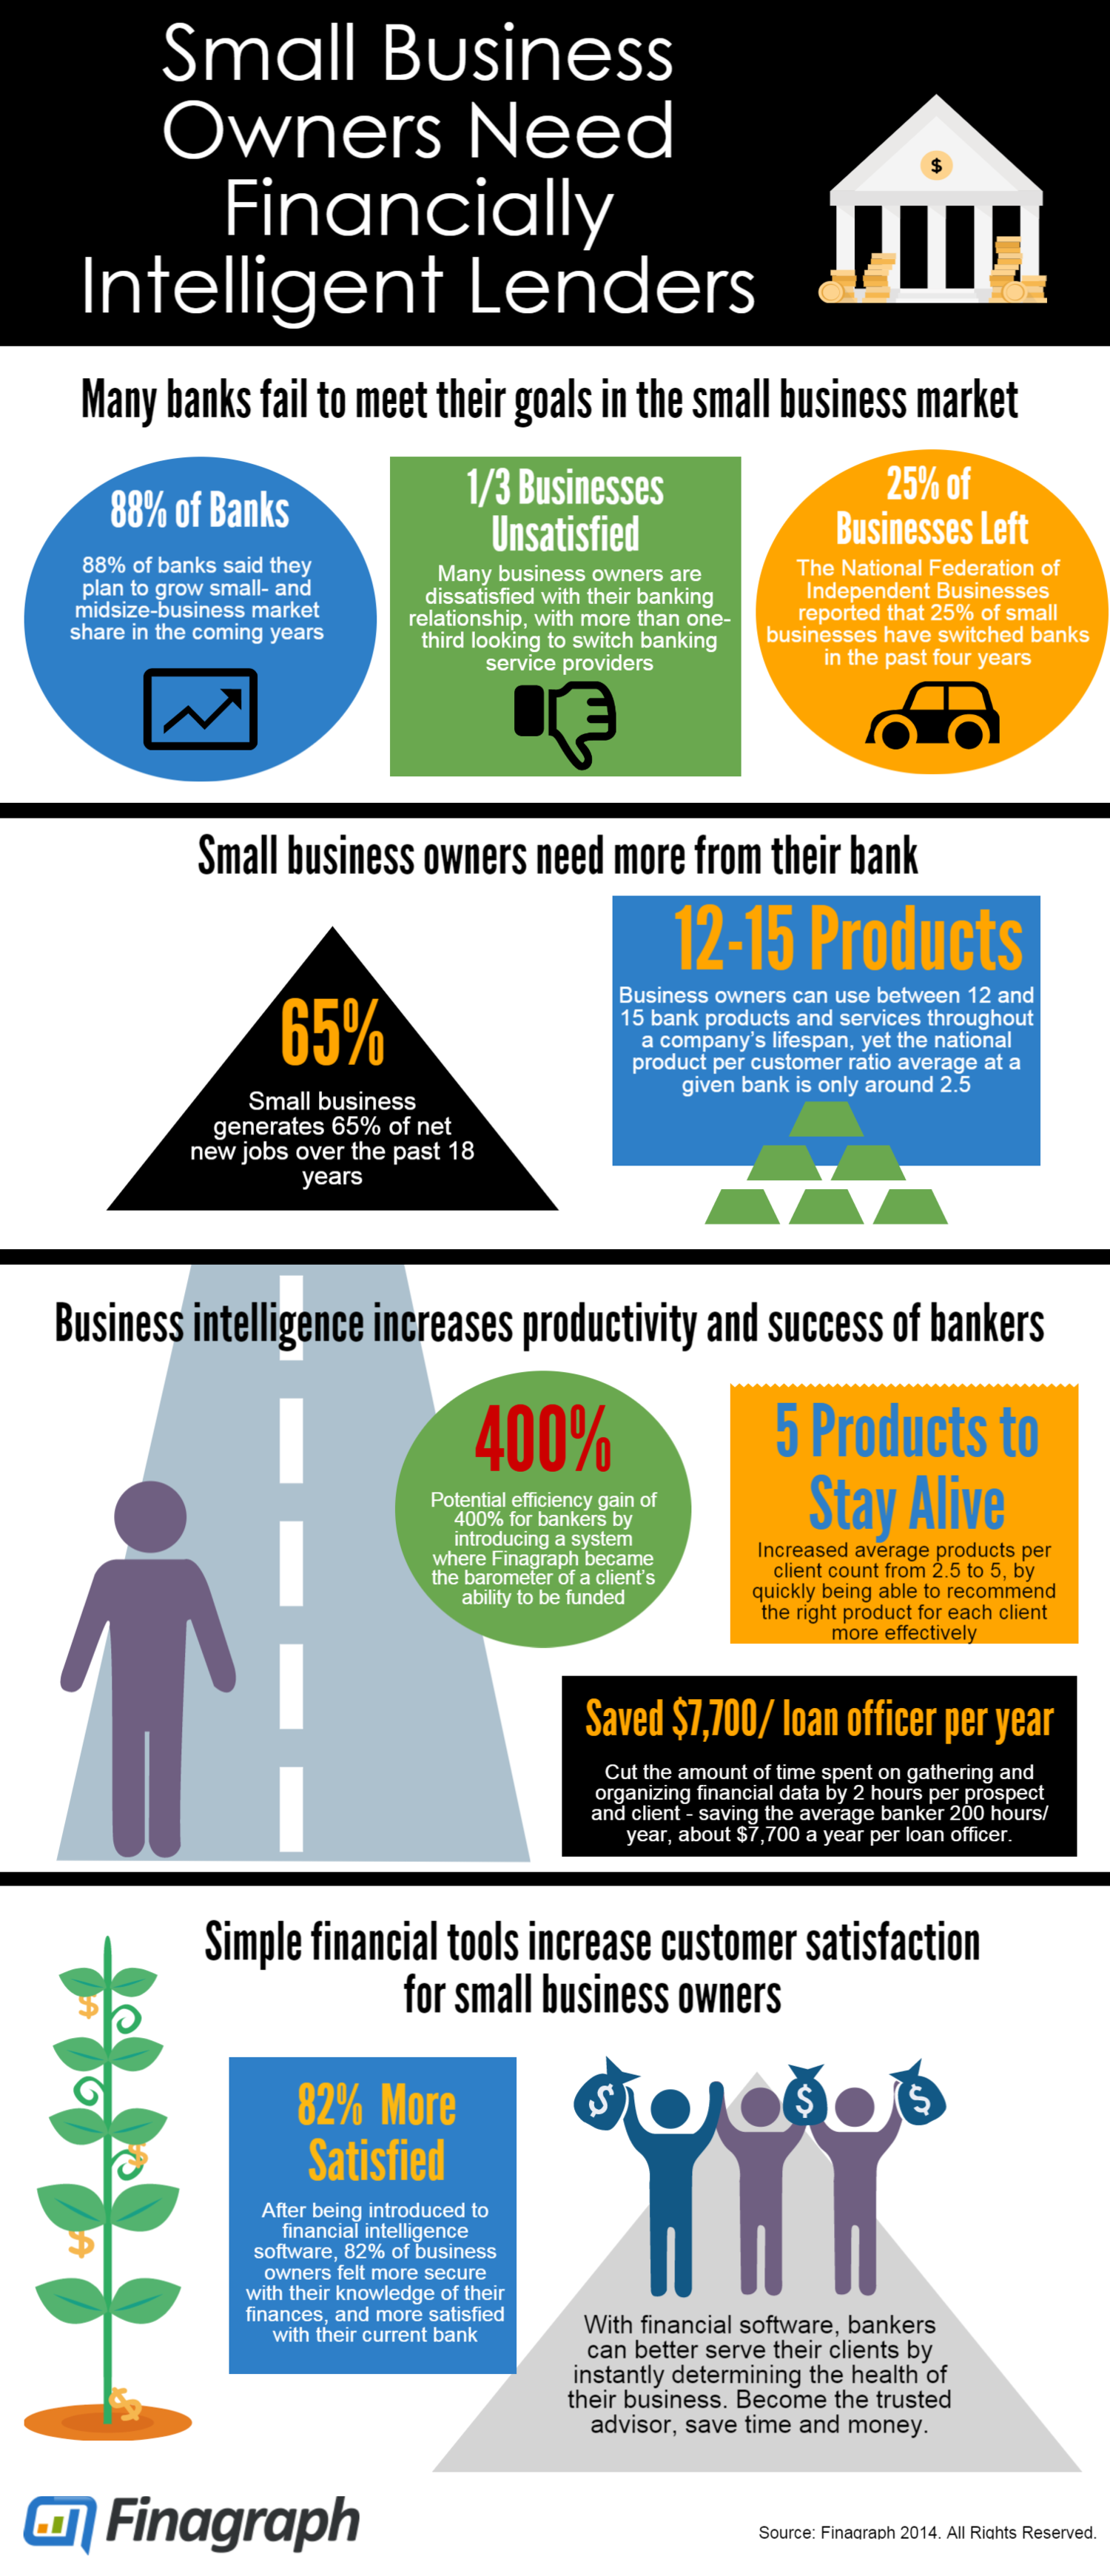 Finagraph Infographic_ Small Business Owners Need Financially Intelligent Lenders.png